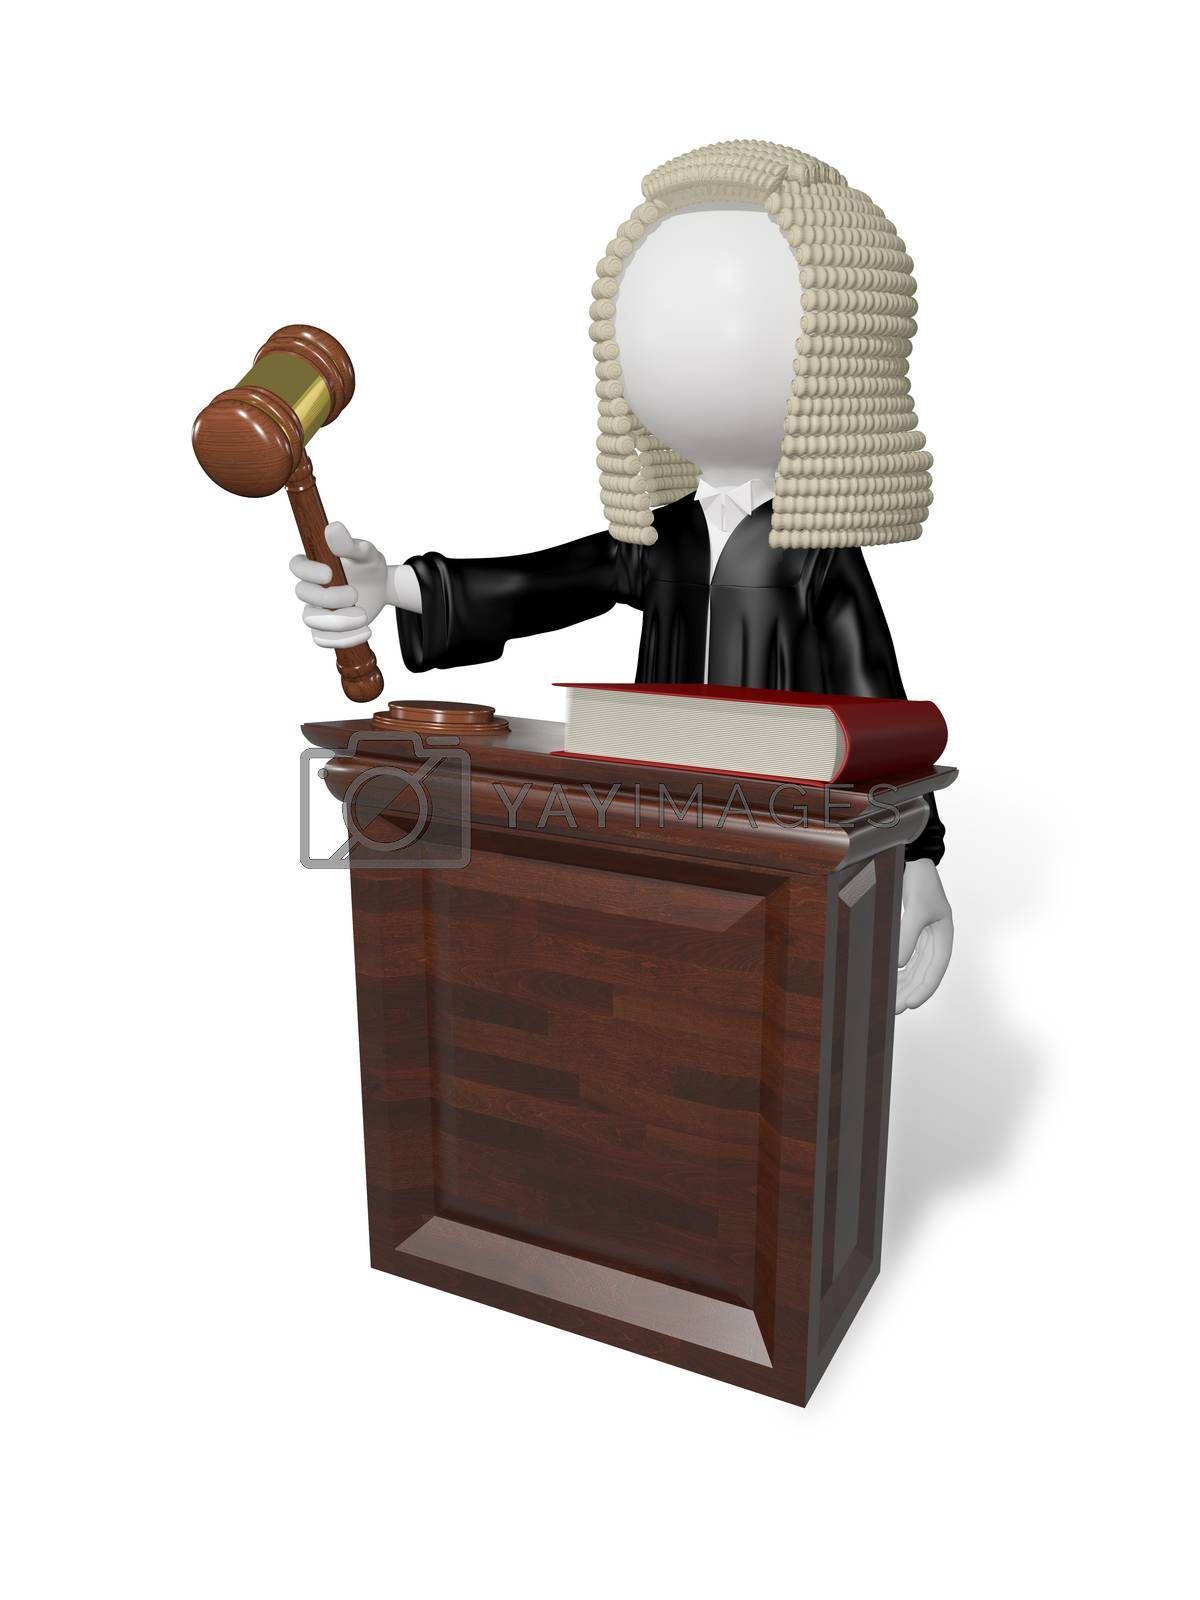 abstract illustration of a judge with gavel at the table